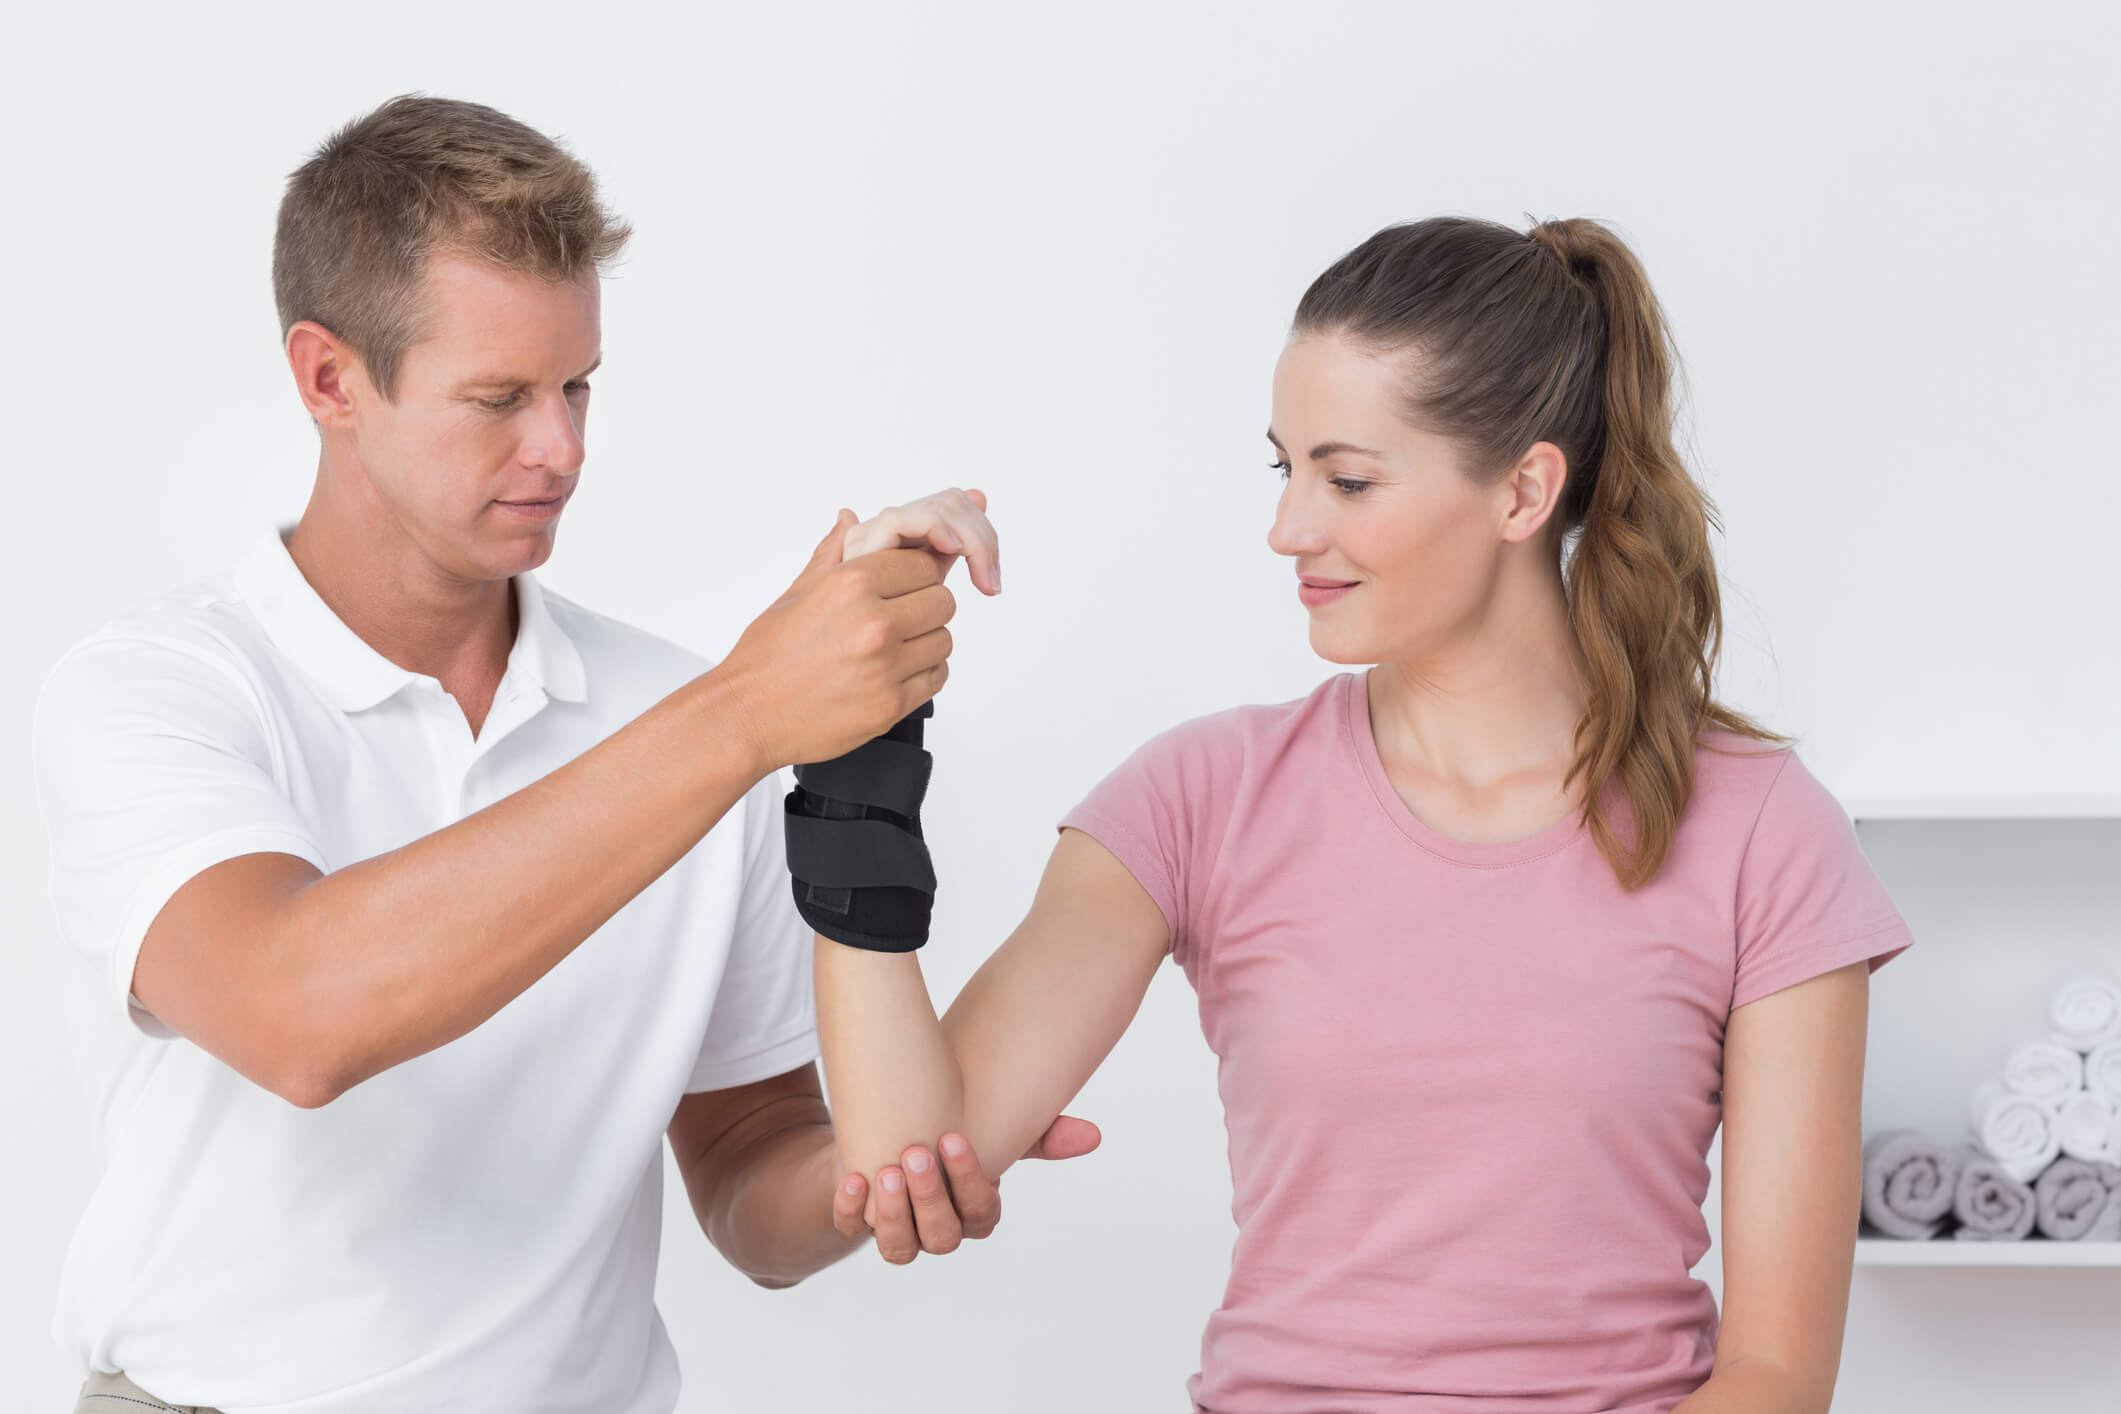 Doctor examining a female patient wearing a wrist support